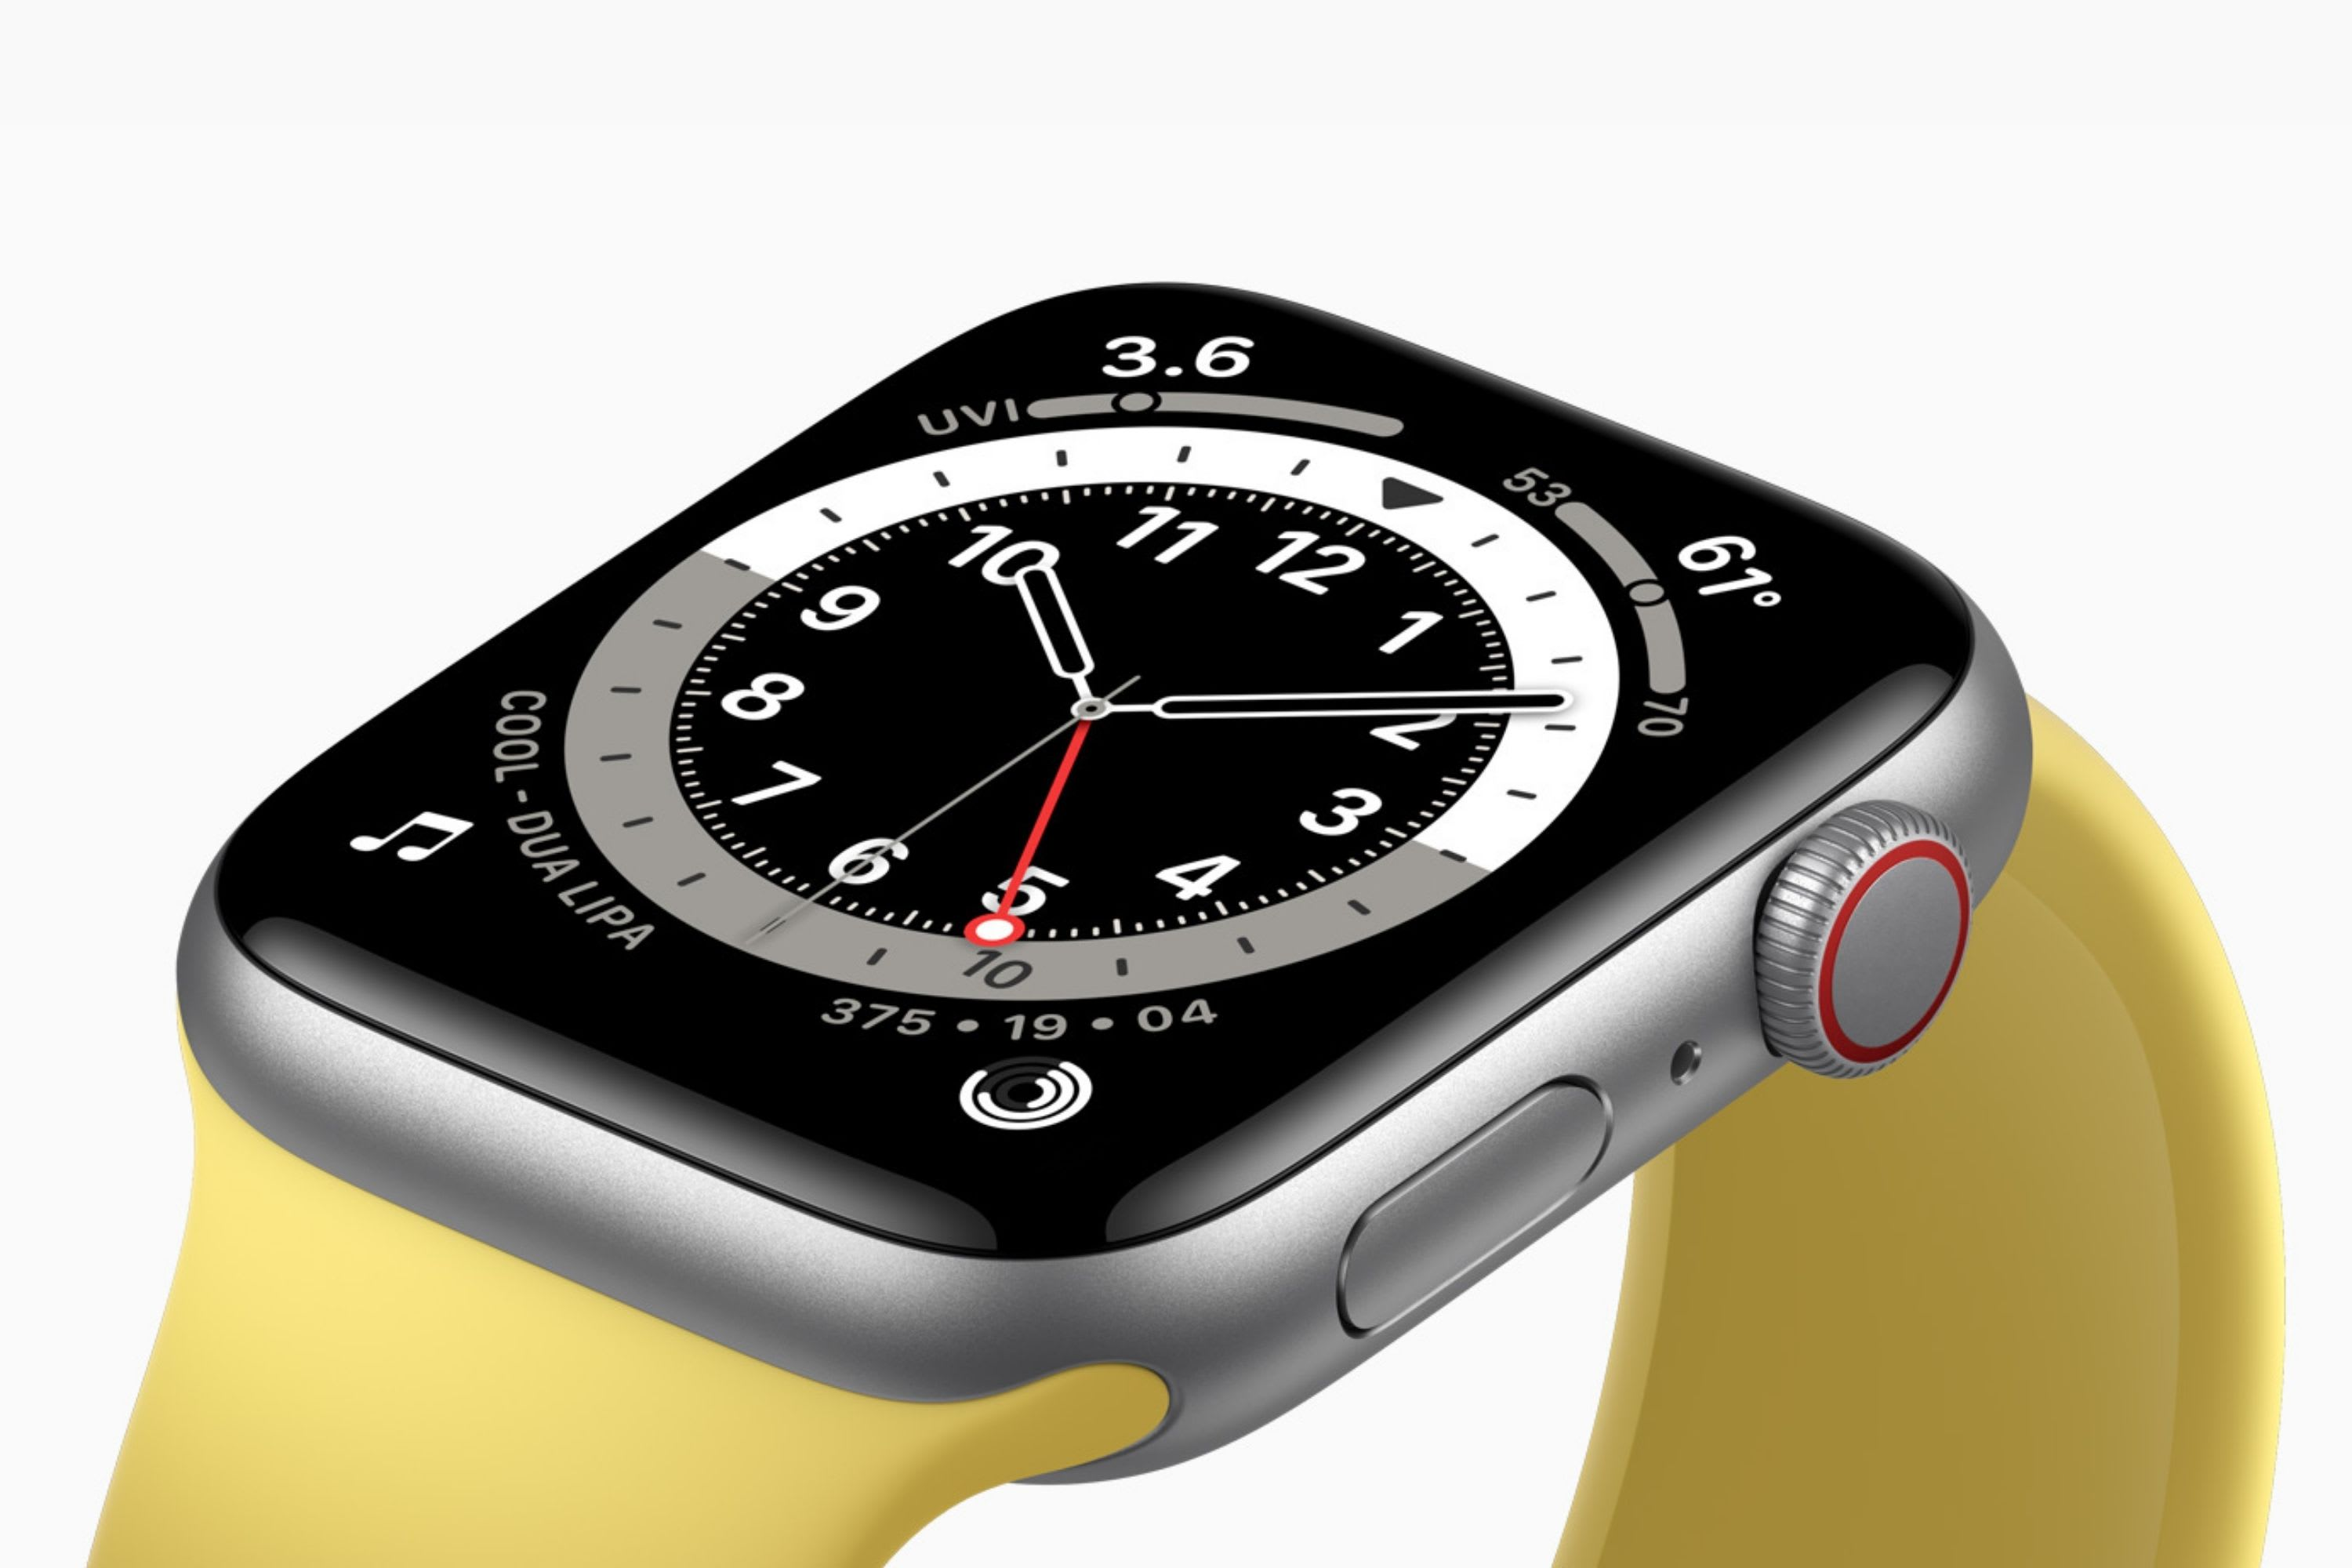 apple-watch-se-sports-s5-system-and-prioritizes-health-safety-and-fitness-like-the-watch-series-20200915-4